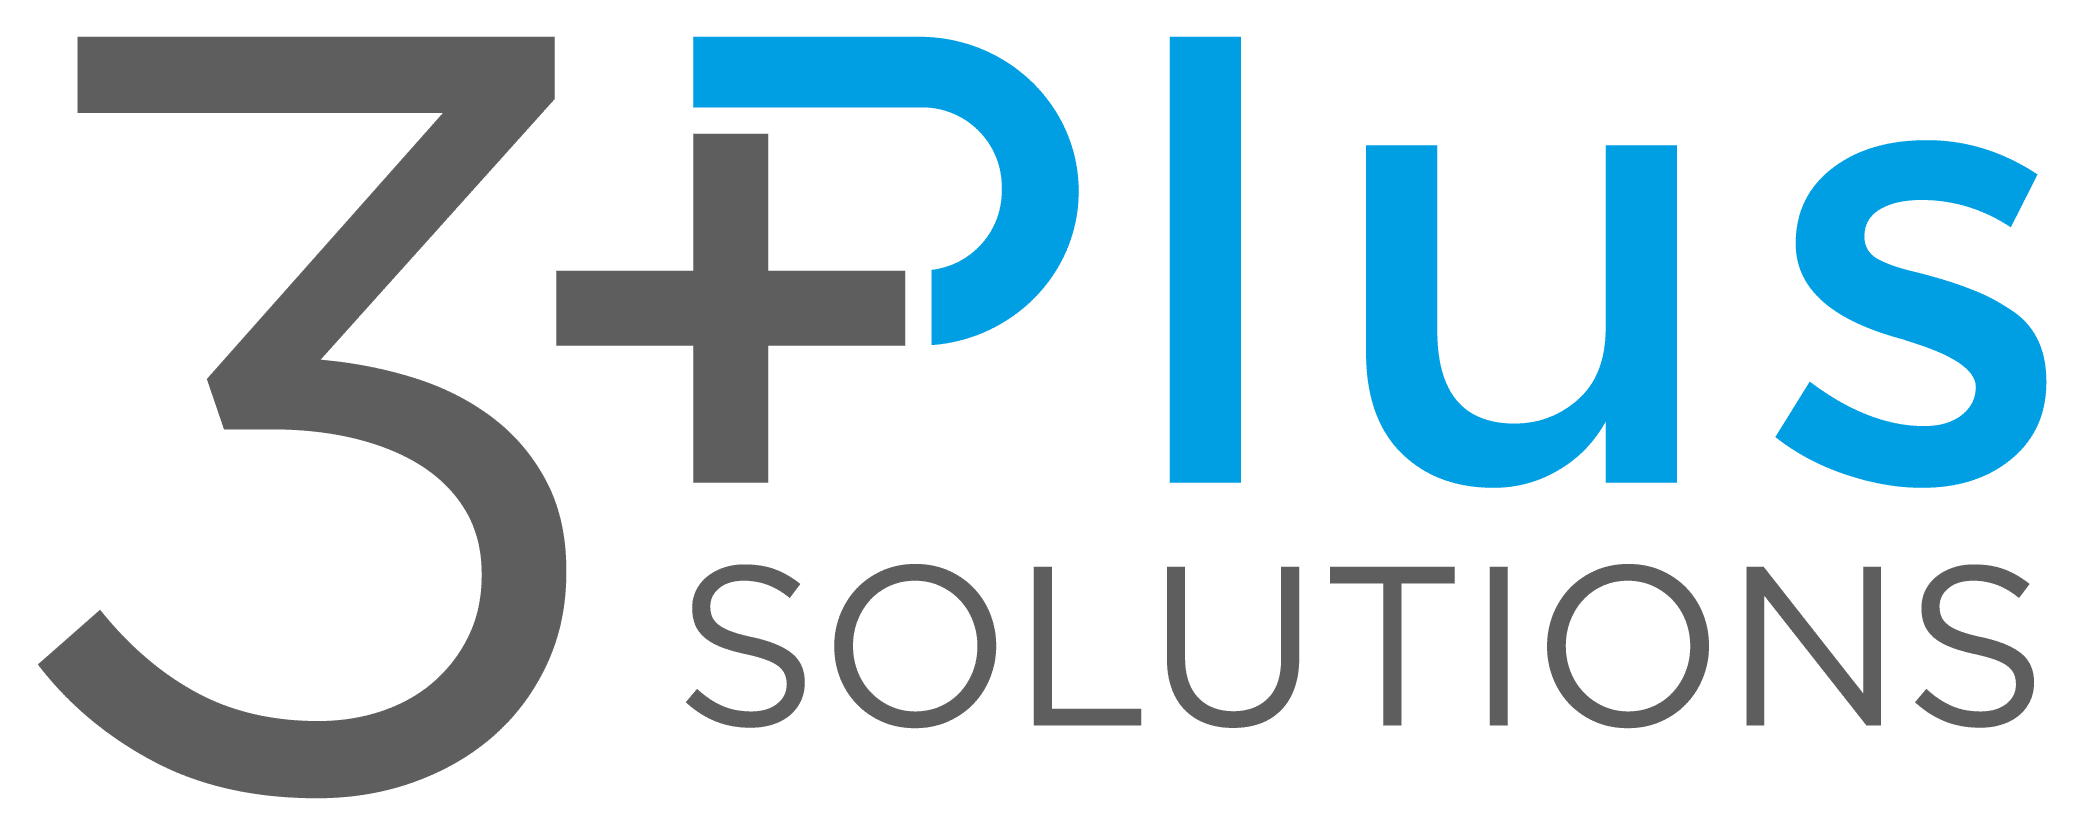 3 Plus Solutions GmbH & Co. KG